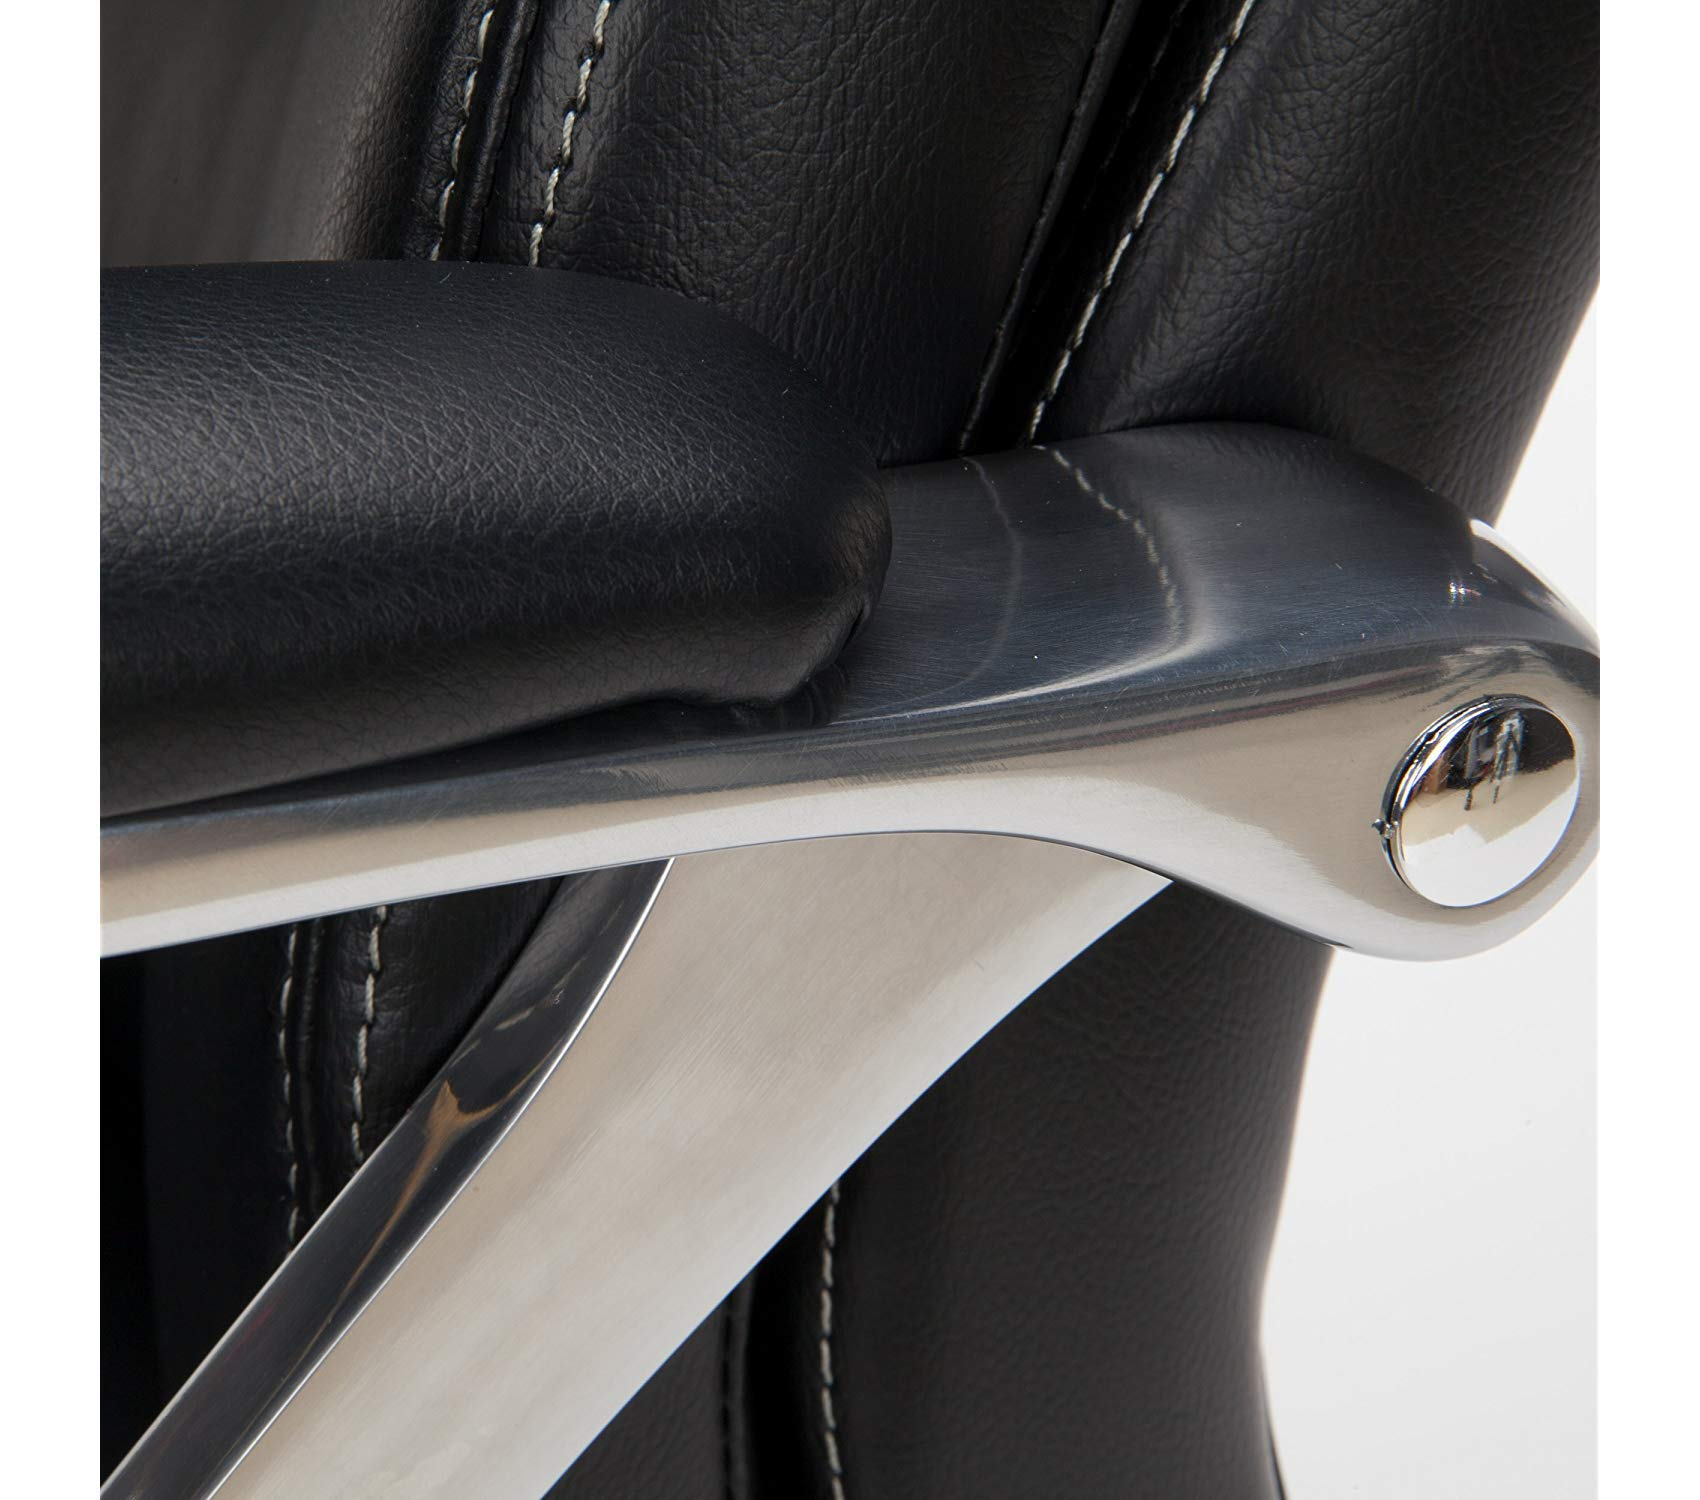 Оfm Avenger Series Big and Tall Leather Executive Chair - Black Computer Chair with Arms, Black/Chrome by Оfm (Image #7)